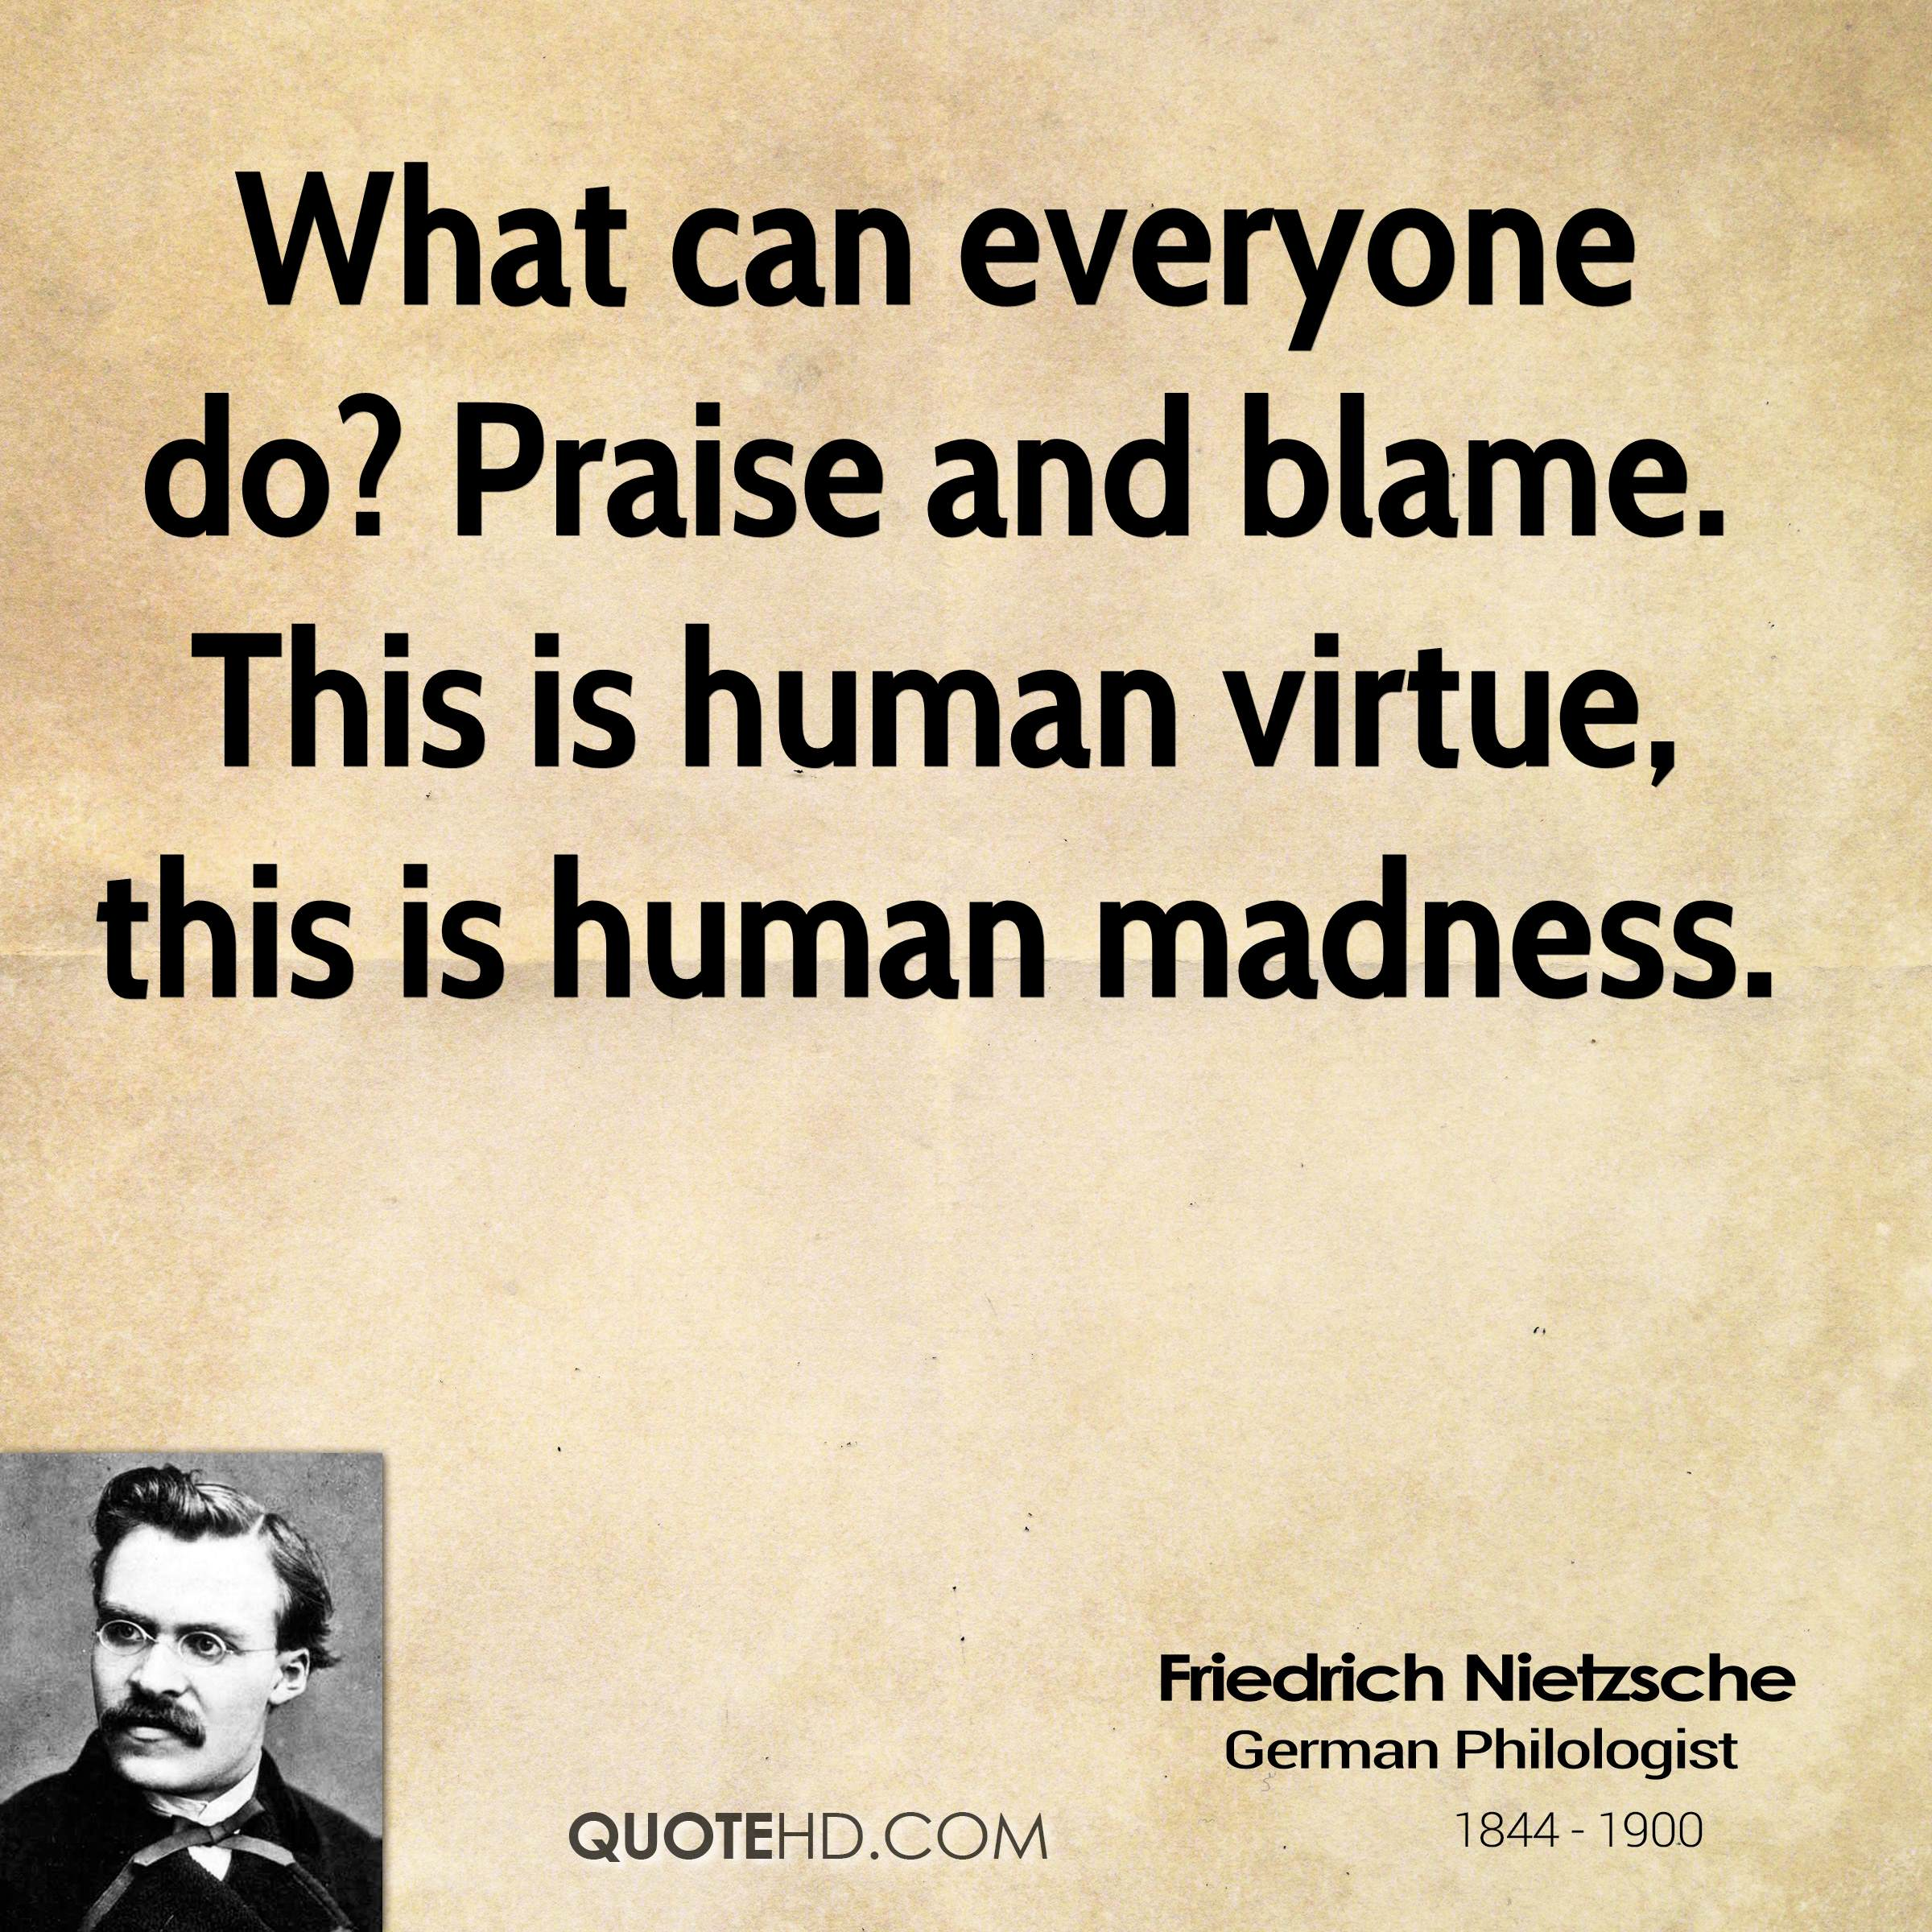 hamlet quote on madness Insane quotes by mad characters in the shakesperian classic known as hamlet, a key theme is the topic of madness whether it be genuine madness or madness used to confuse other characters, it surely plays a vital role in the play's entirety.